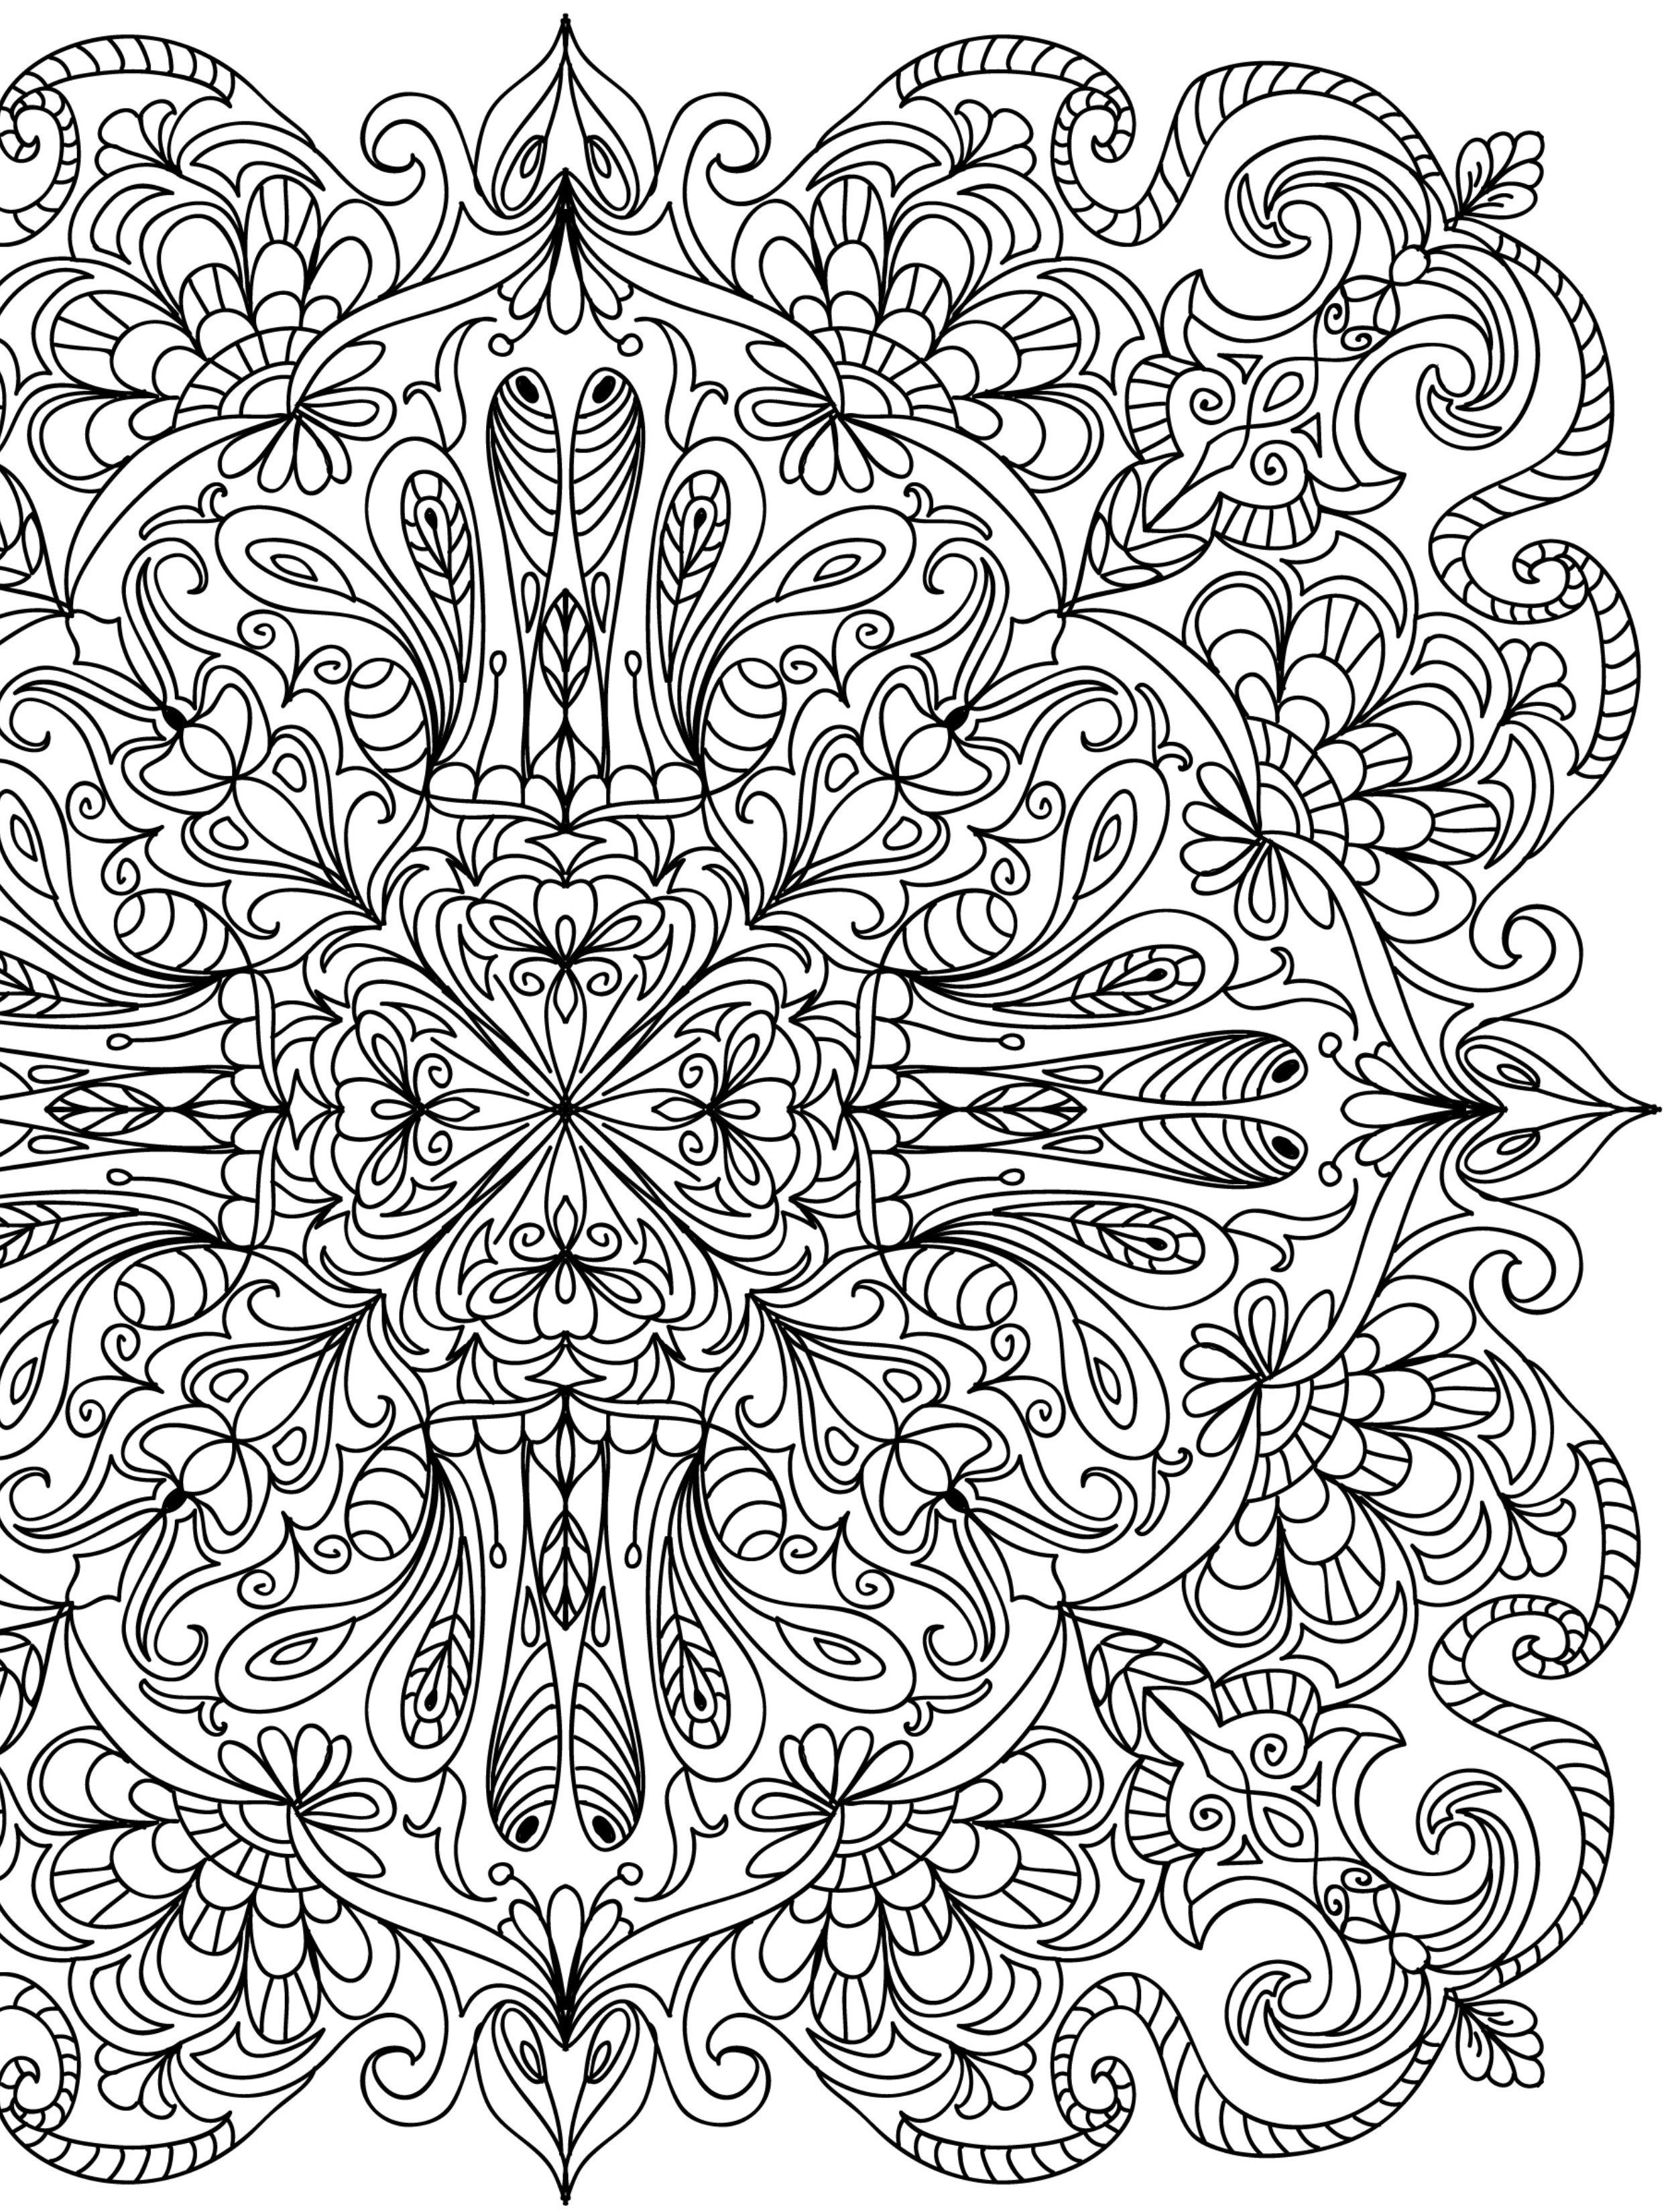 15 CRAZY Busy Coloring Pages for Adults | Ausmalbilder für ...